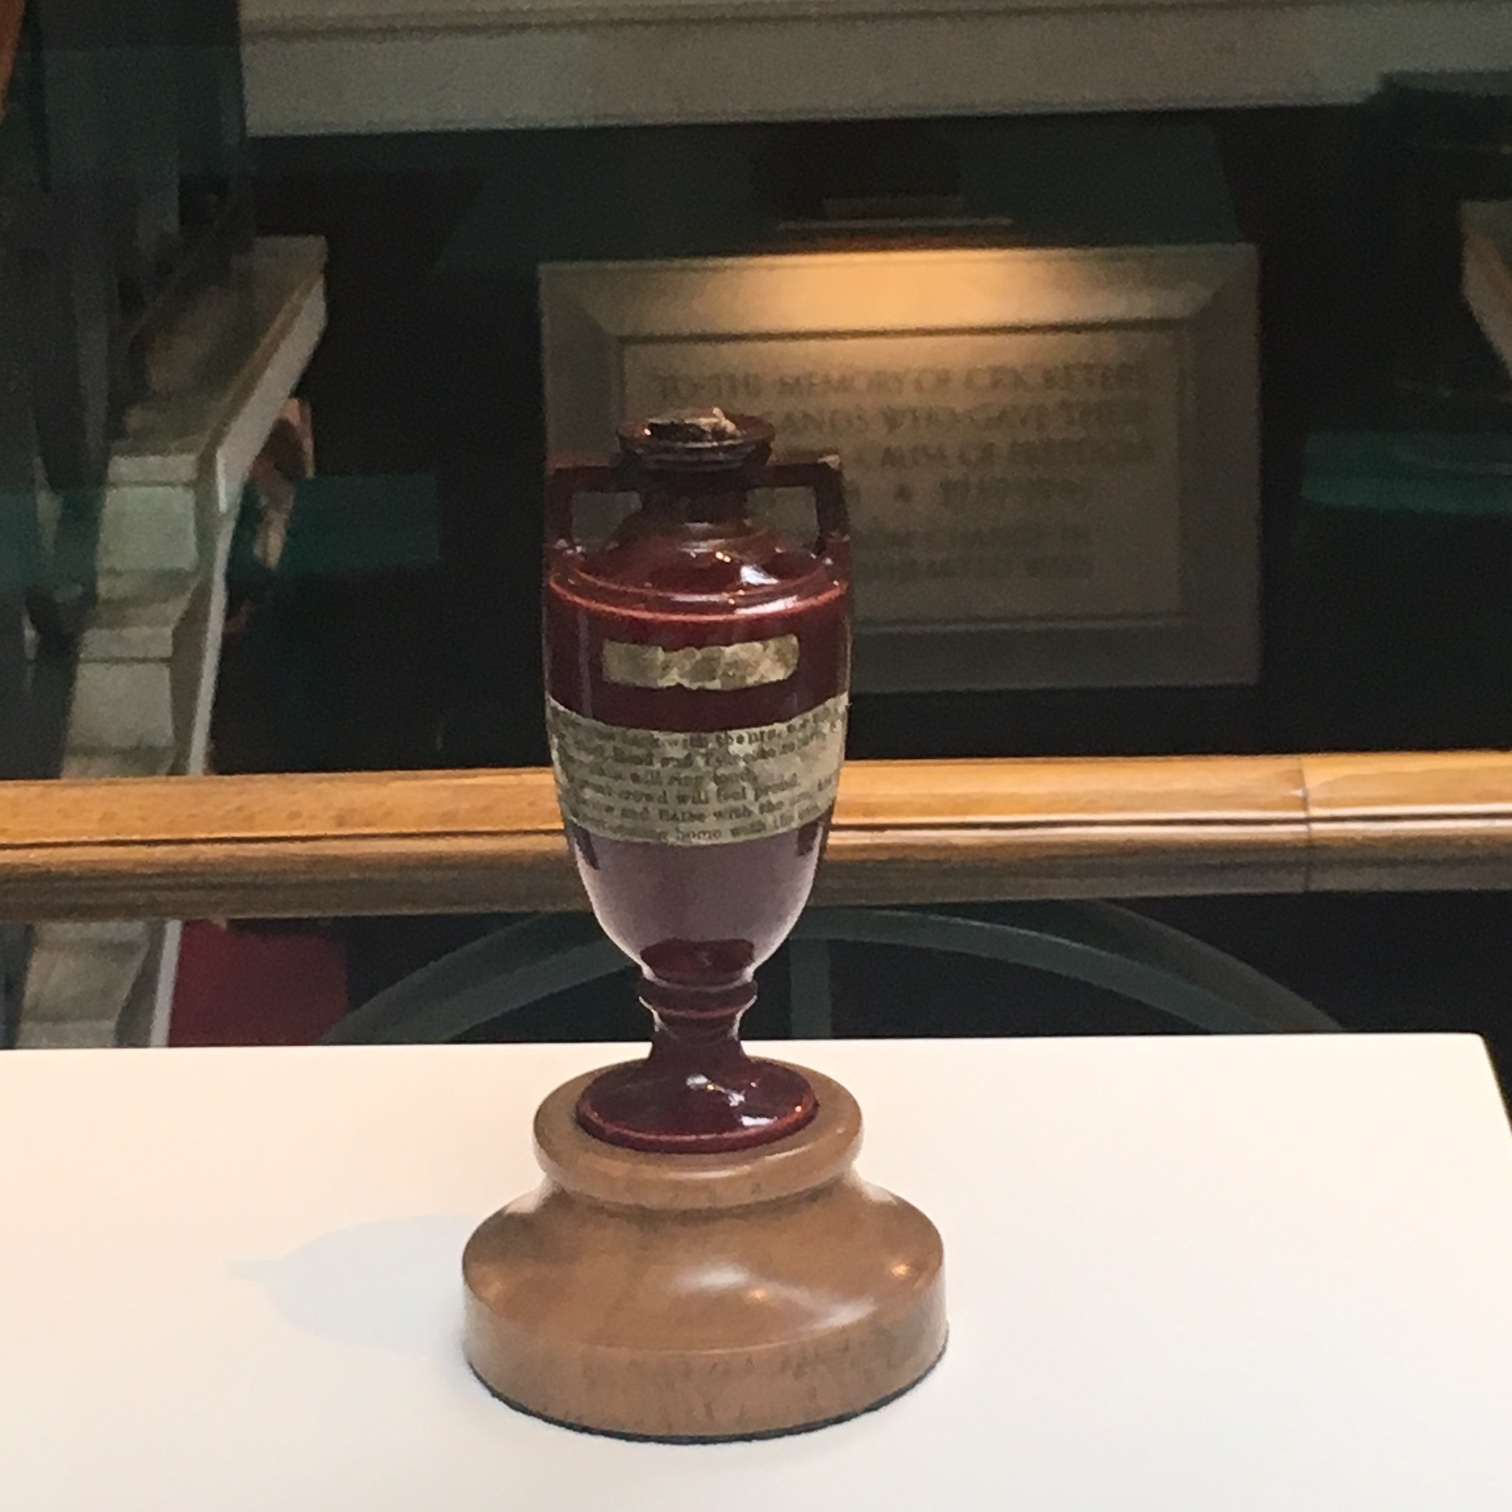 The Ashes trophy, London by The Doubtful Traveller